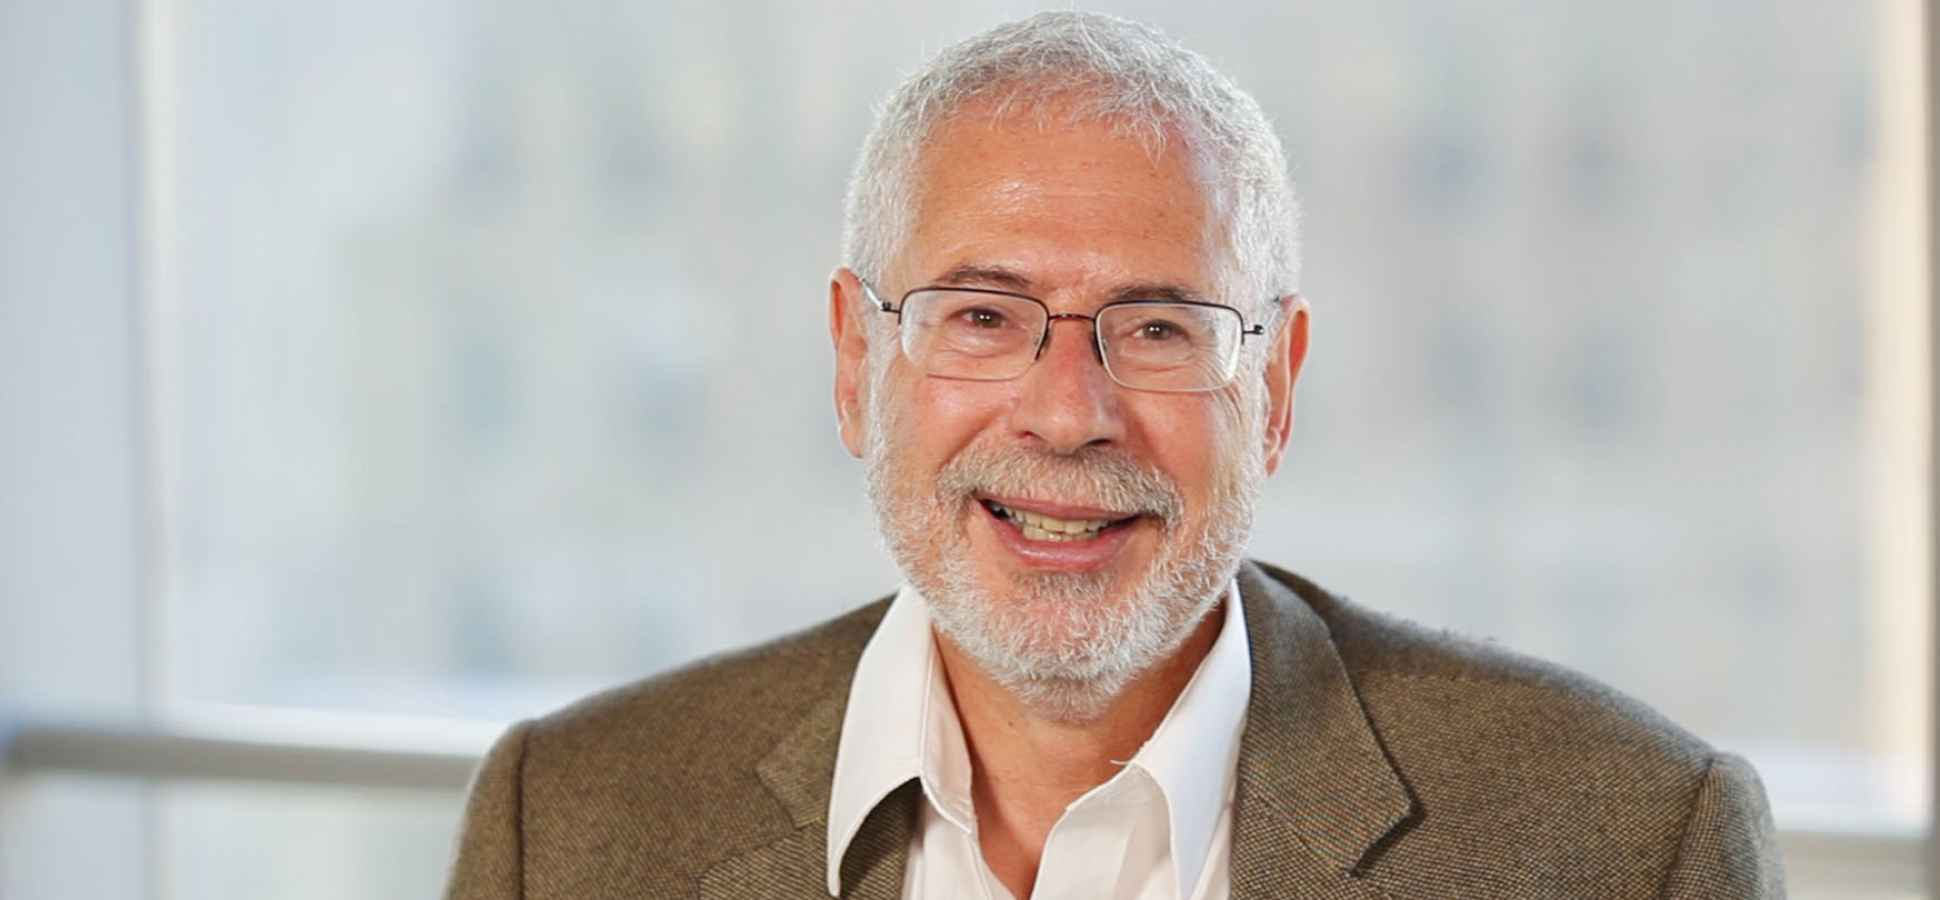 Steve Blank: These Are the 3 Ways All Companies Are Organized